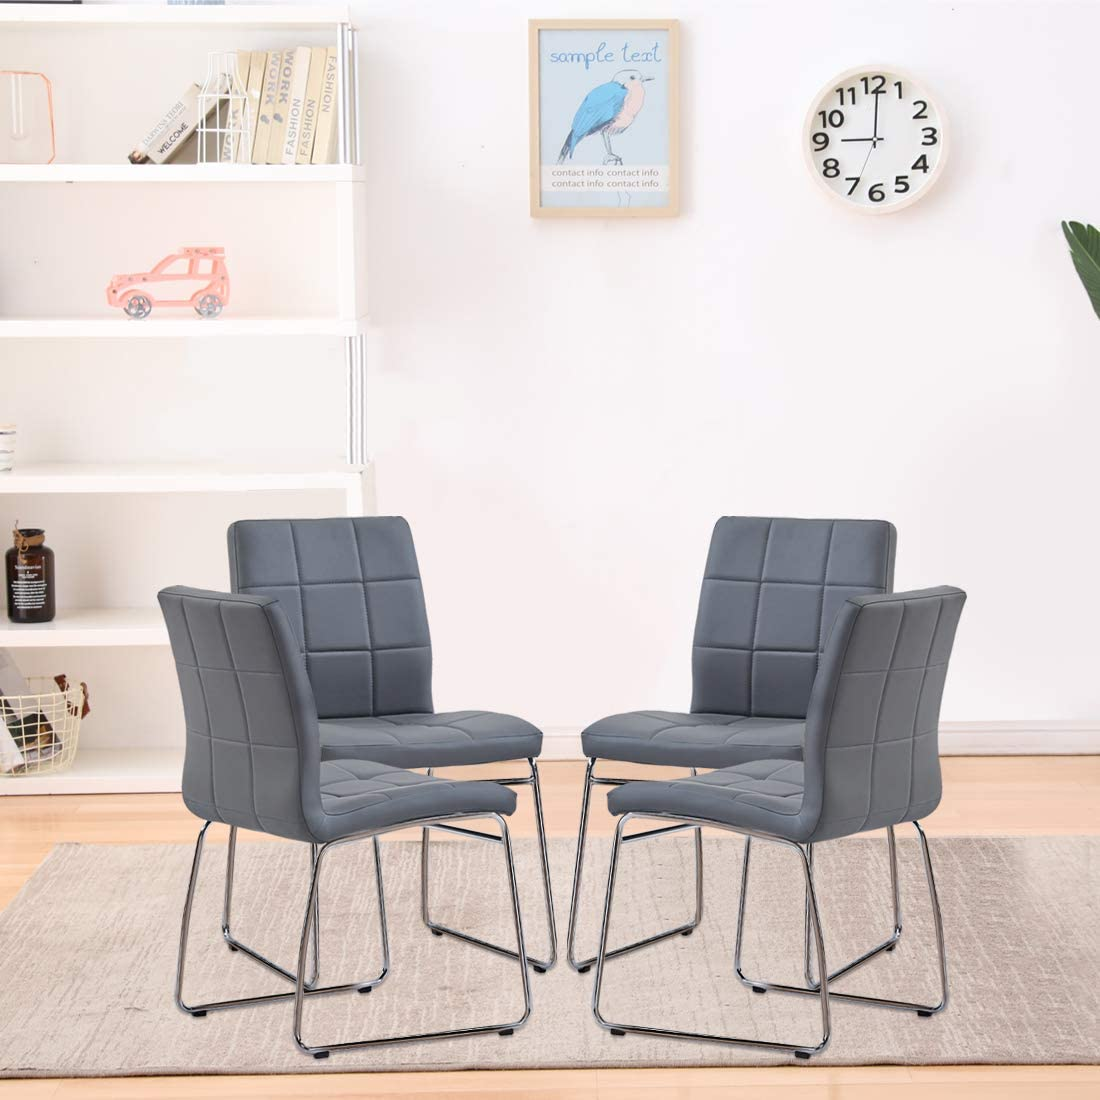 Modern Dining Room Chairs Set of 2 Dining Chairs for Living Room Lounge Waiting Room Kitchen Chairs with Faux Leather Soft Padded Seat Back in Checkered Pattern and Sled Chrome Legs 2 Black Chairs